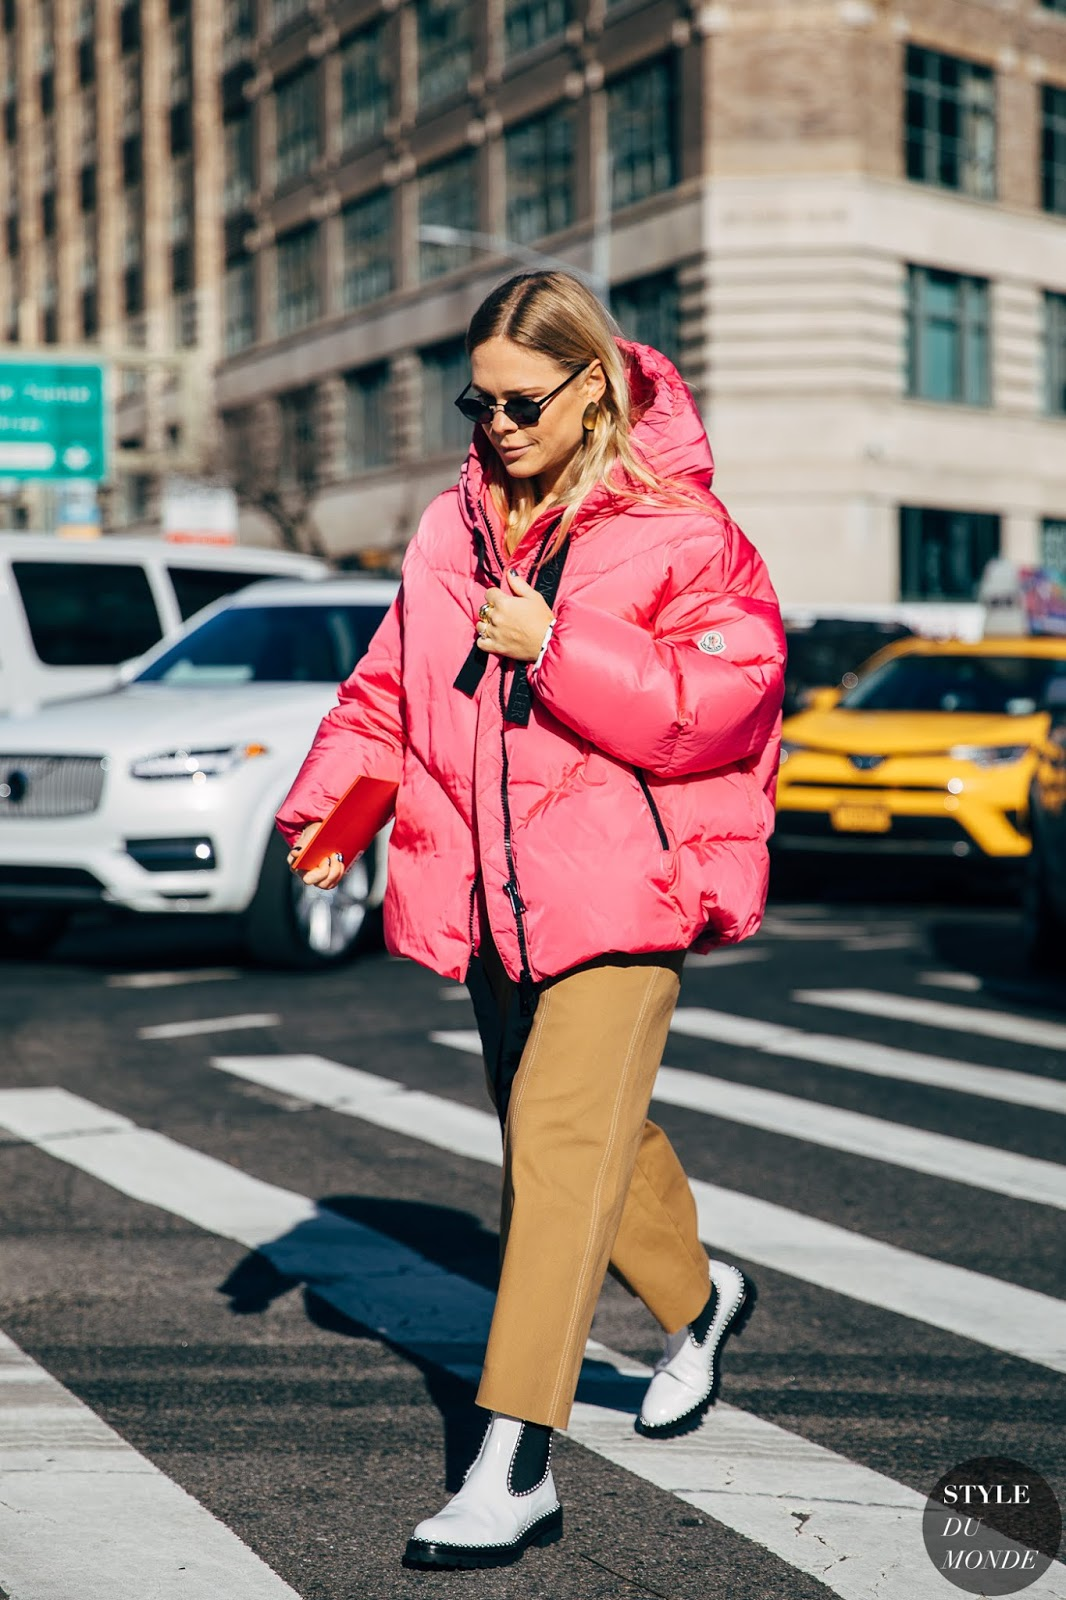 Shop the Colorful Coats Spotted All Over Fashion Week